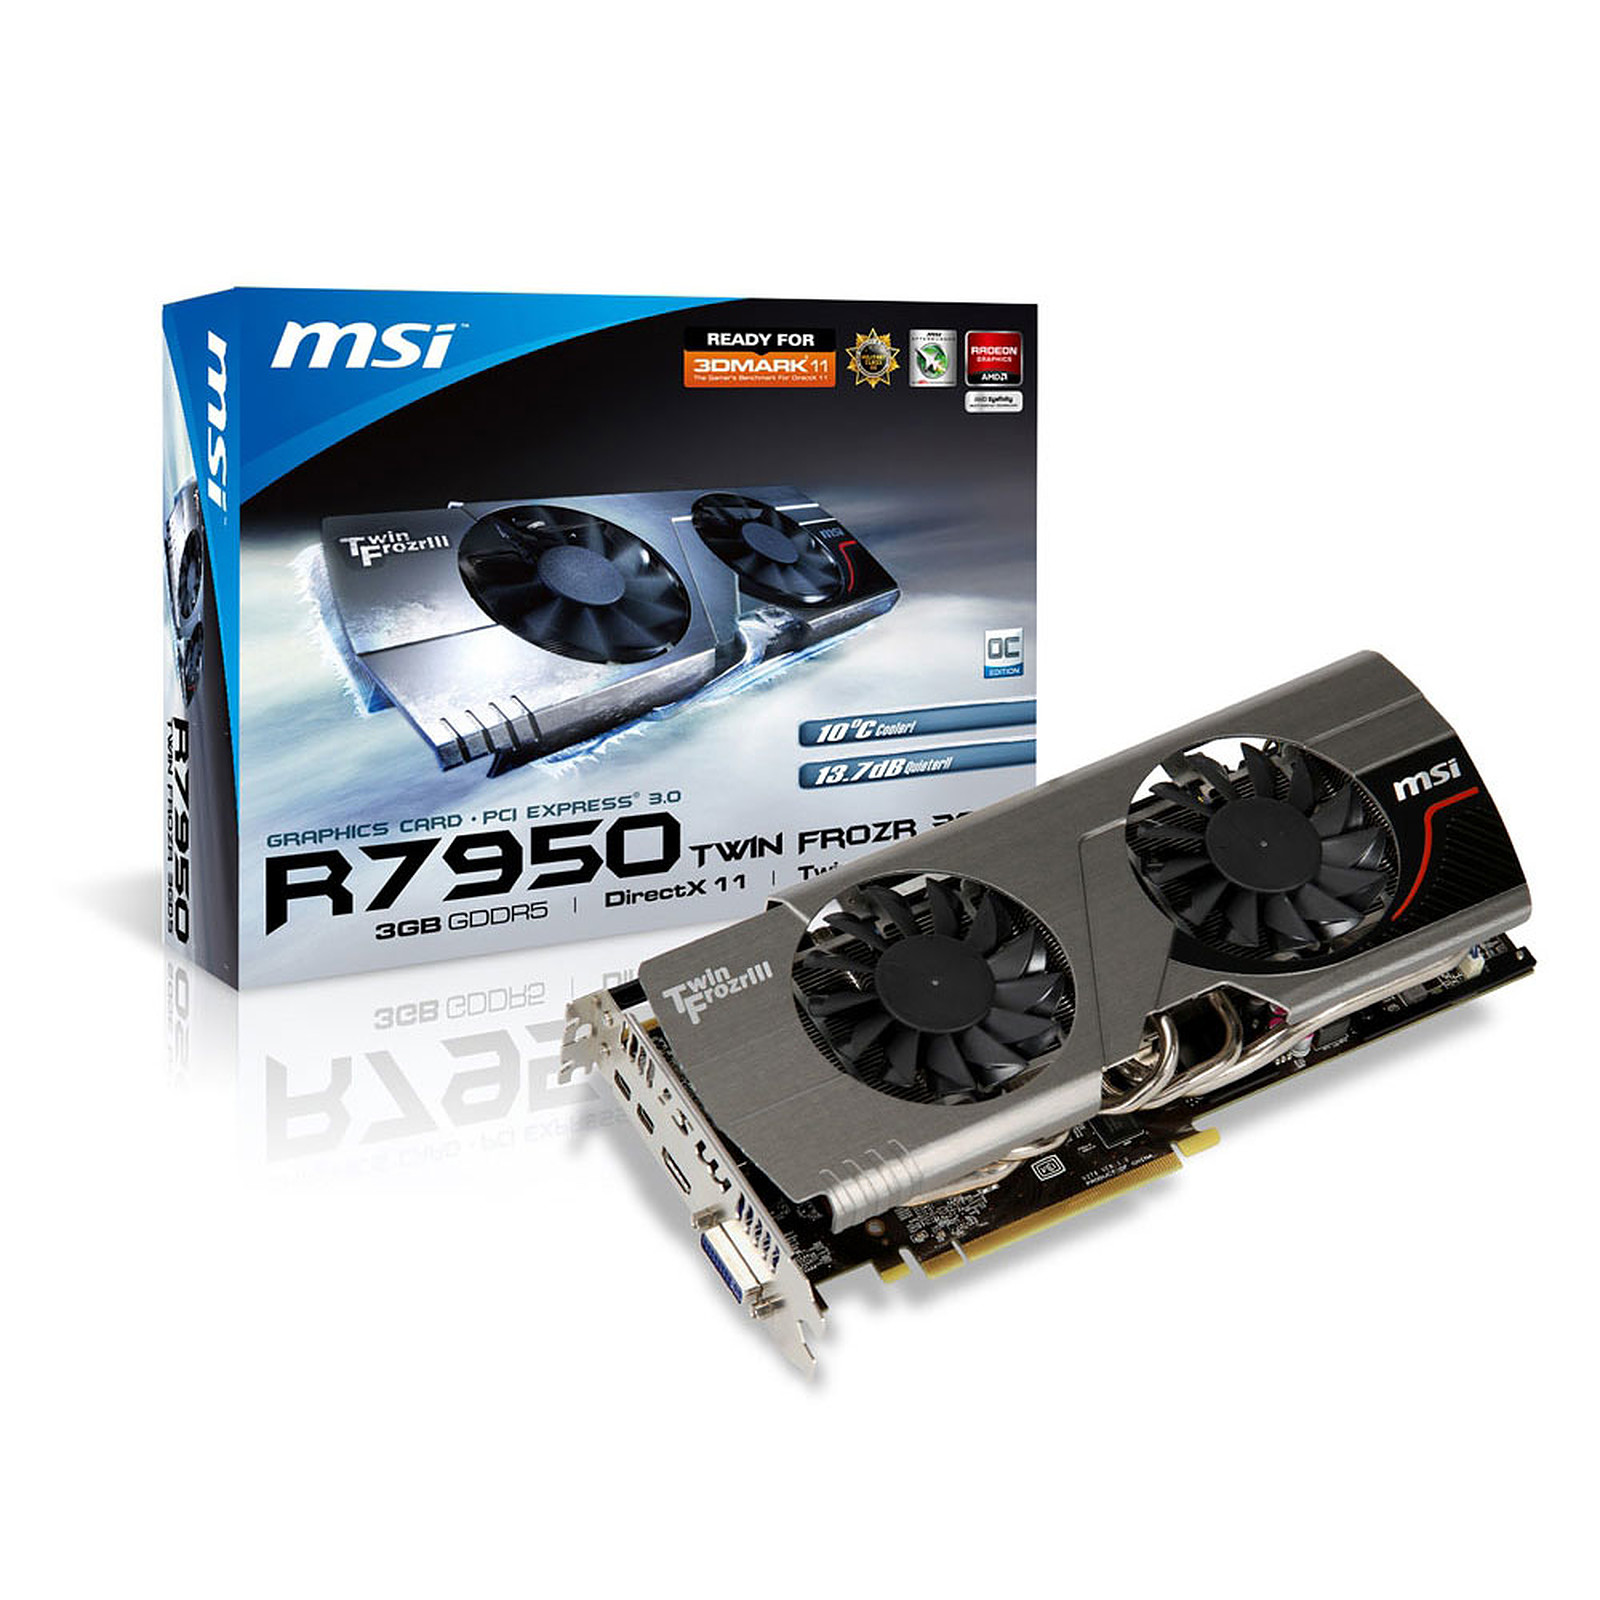 MSI R7950 Twin Frozr 3GD5/OC BE 3 Go